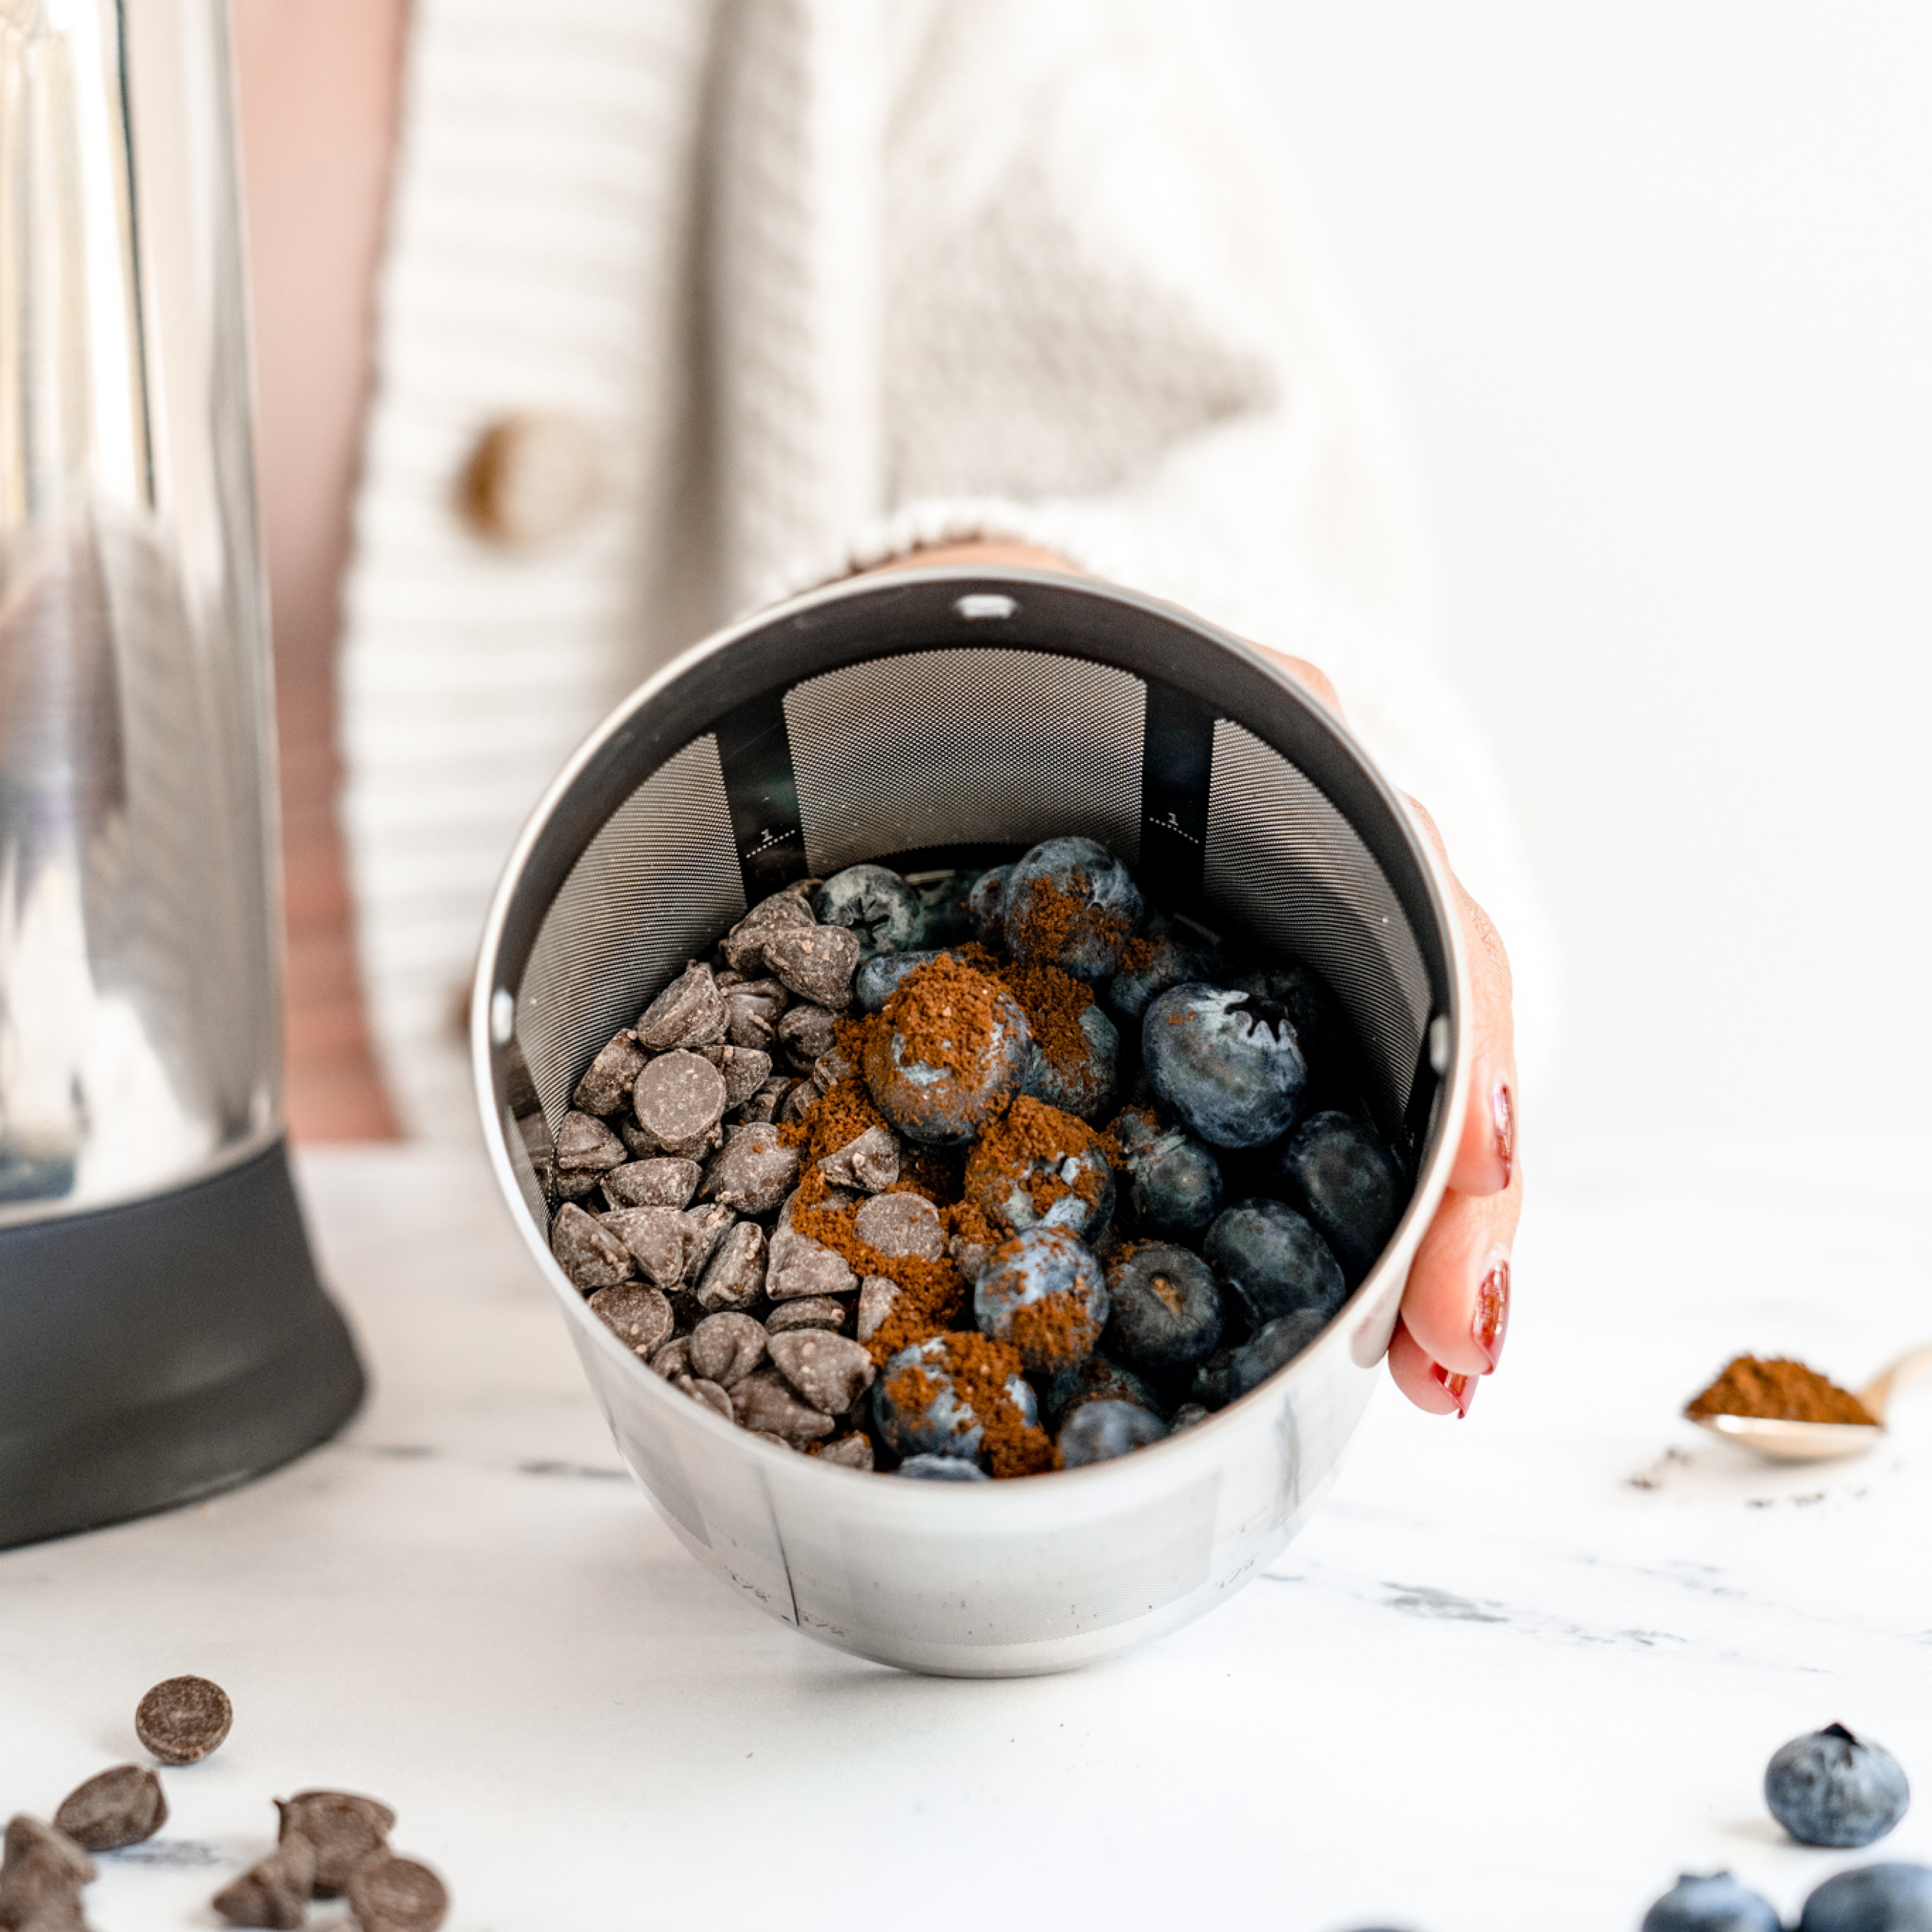 blueberries, chocolate chips, instant coffee in a Almond Cow filter basket to make a blueberry mocha infusion